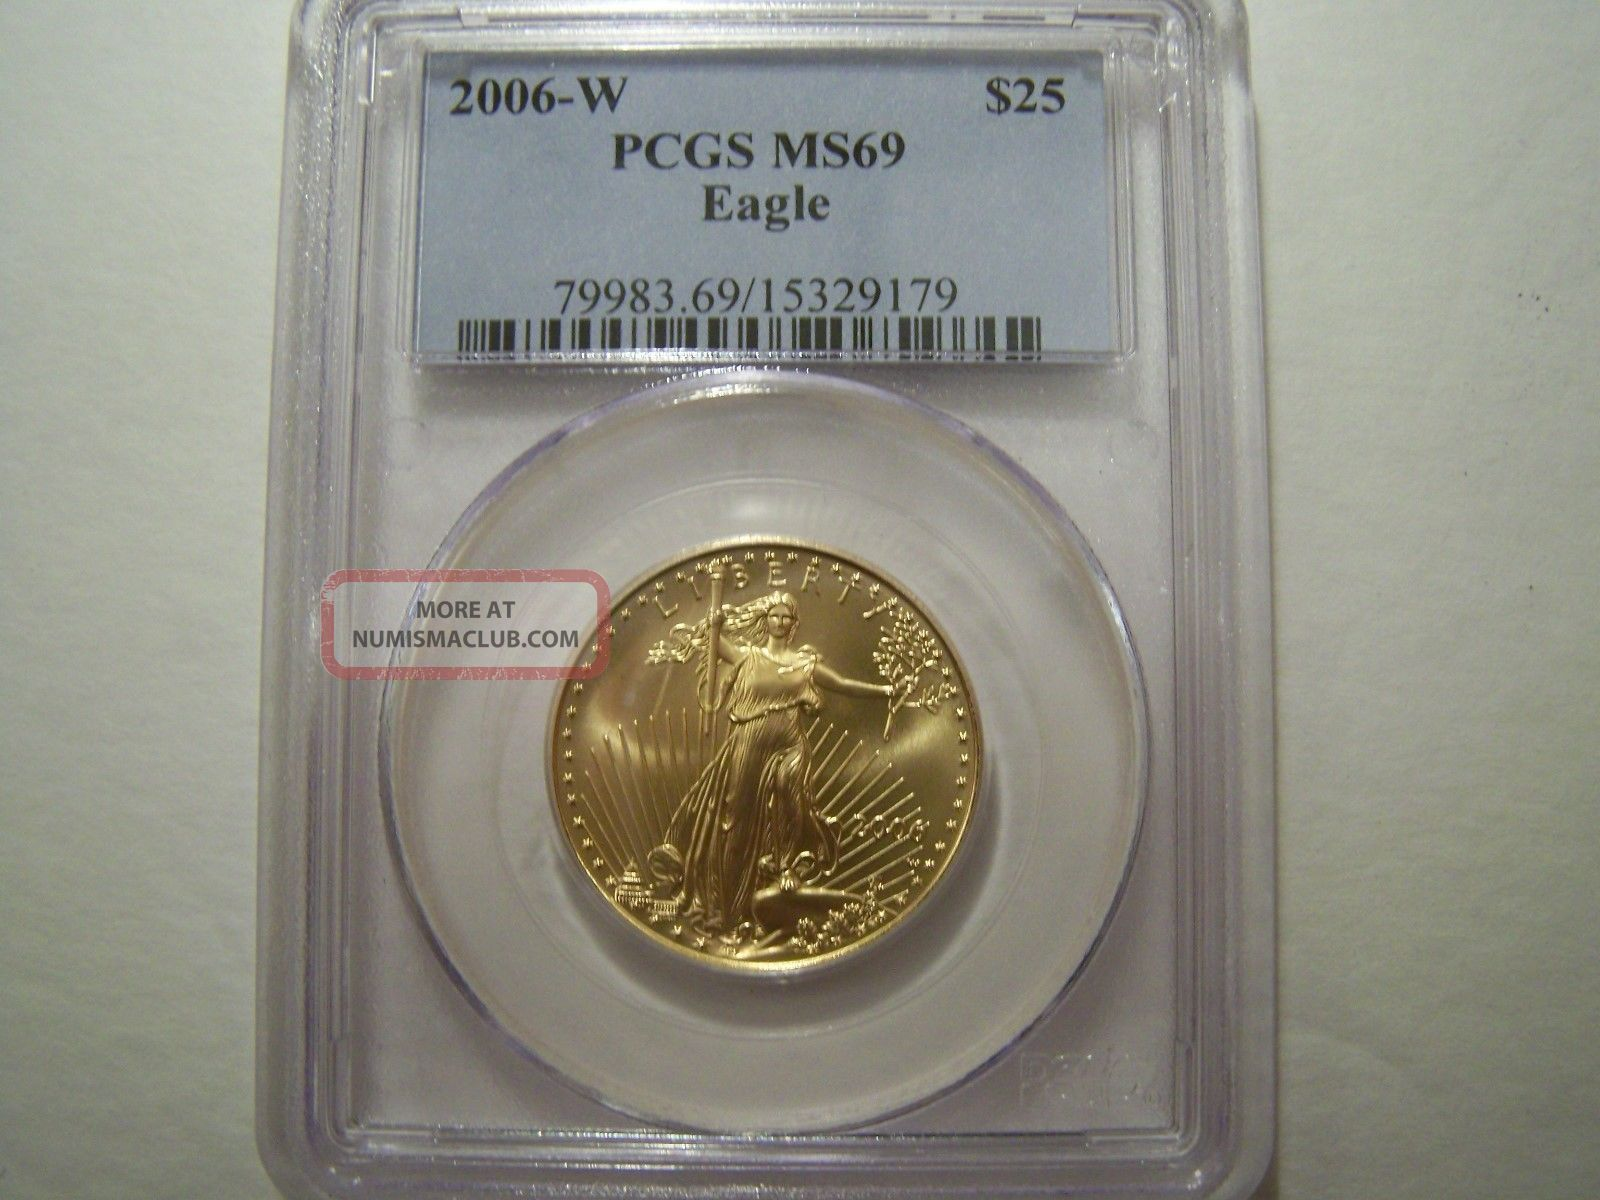 Us $25 Gold Eagle 2006 - W Pcgs Ms69 Gold photo